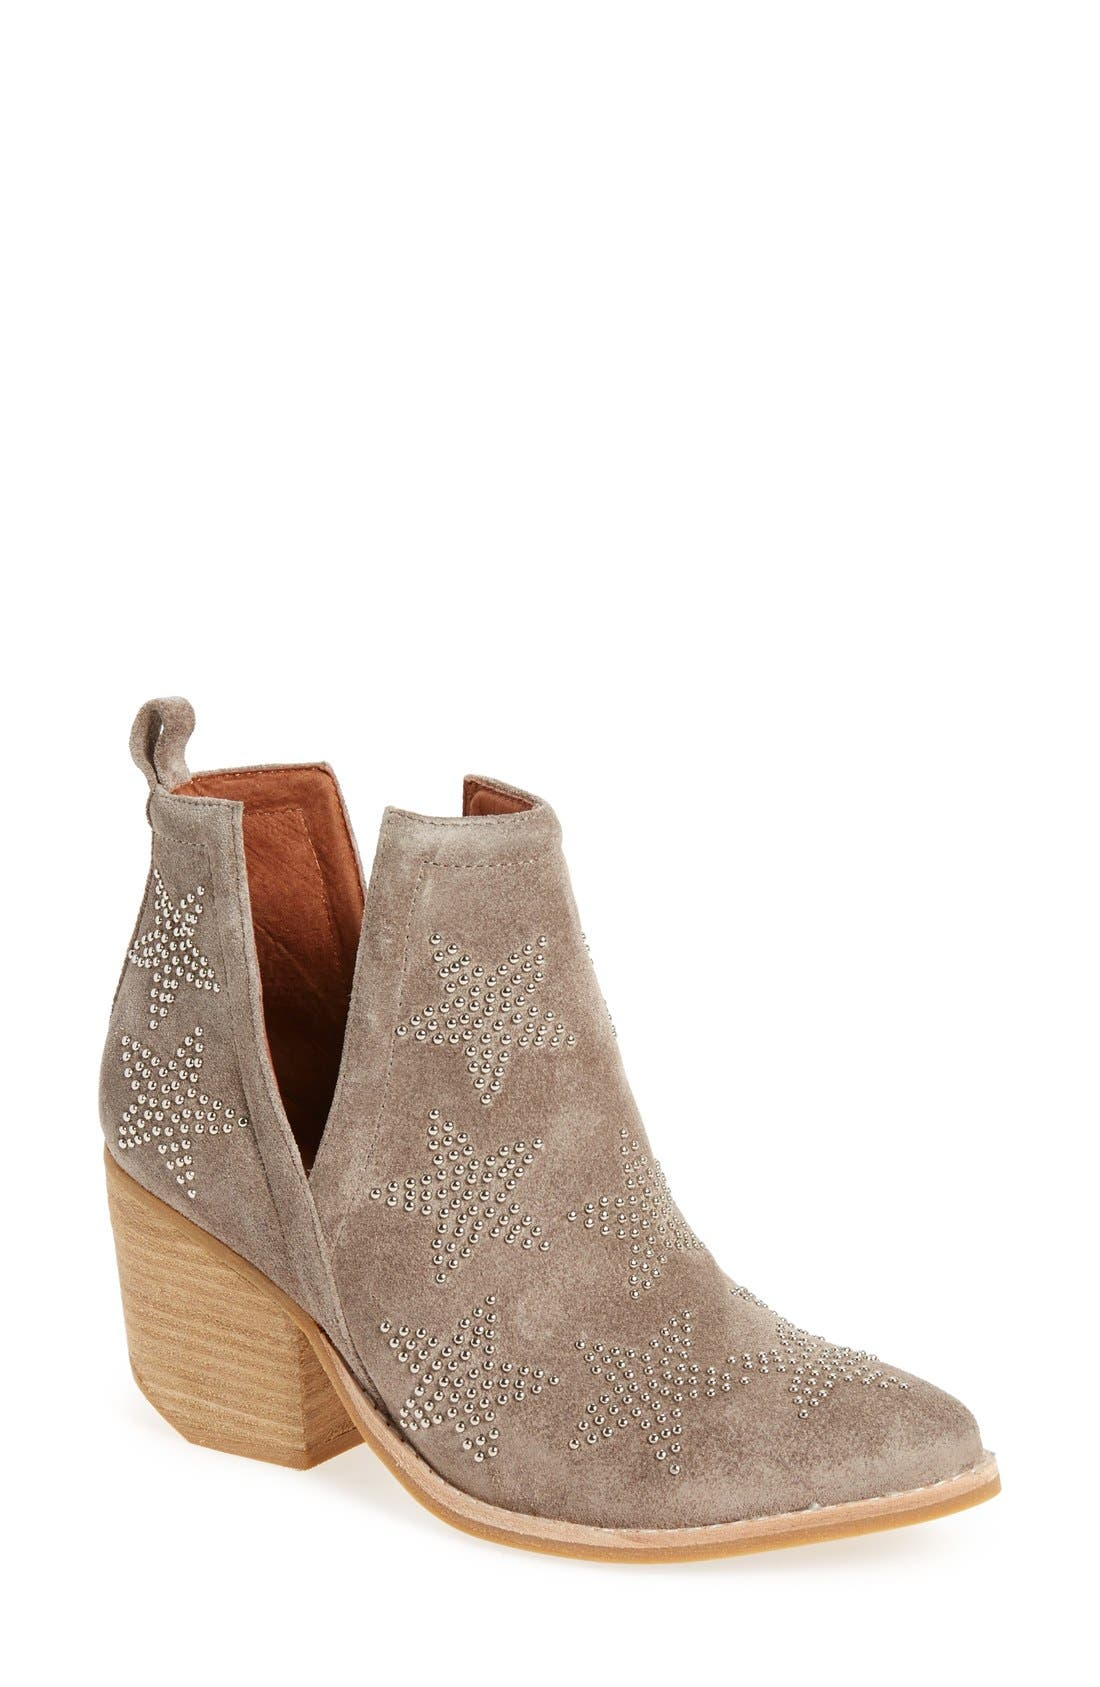 'Asterial' Star Studded Bootie,                             Main thumbnail 1, color,                             250